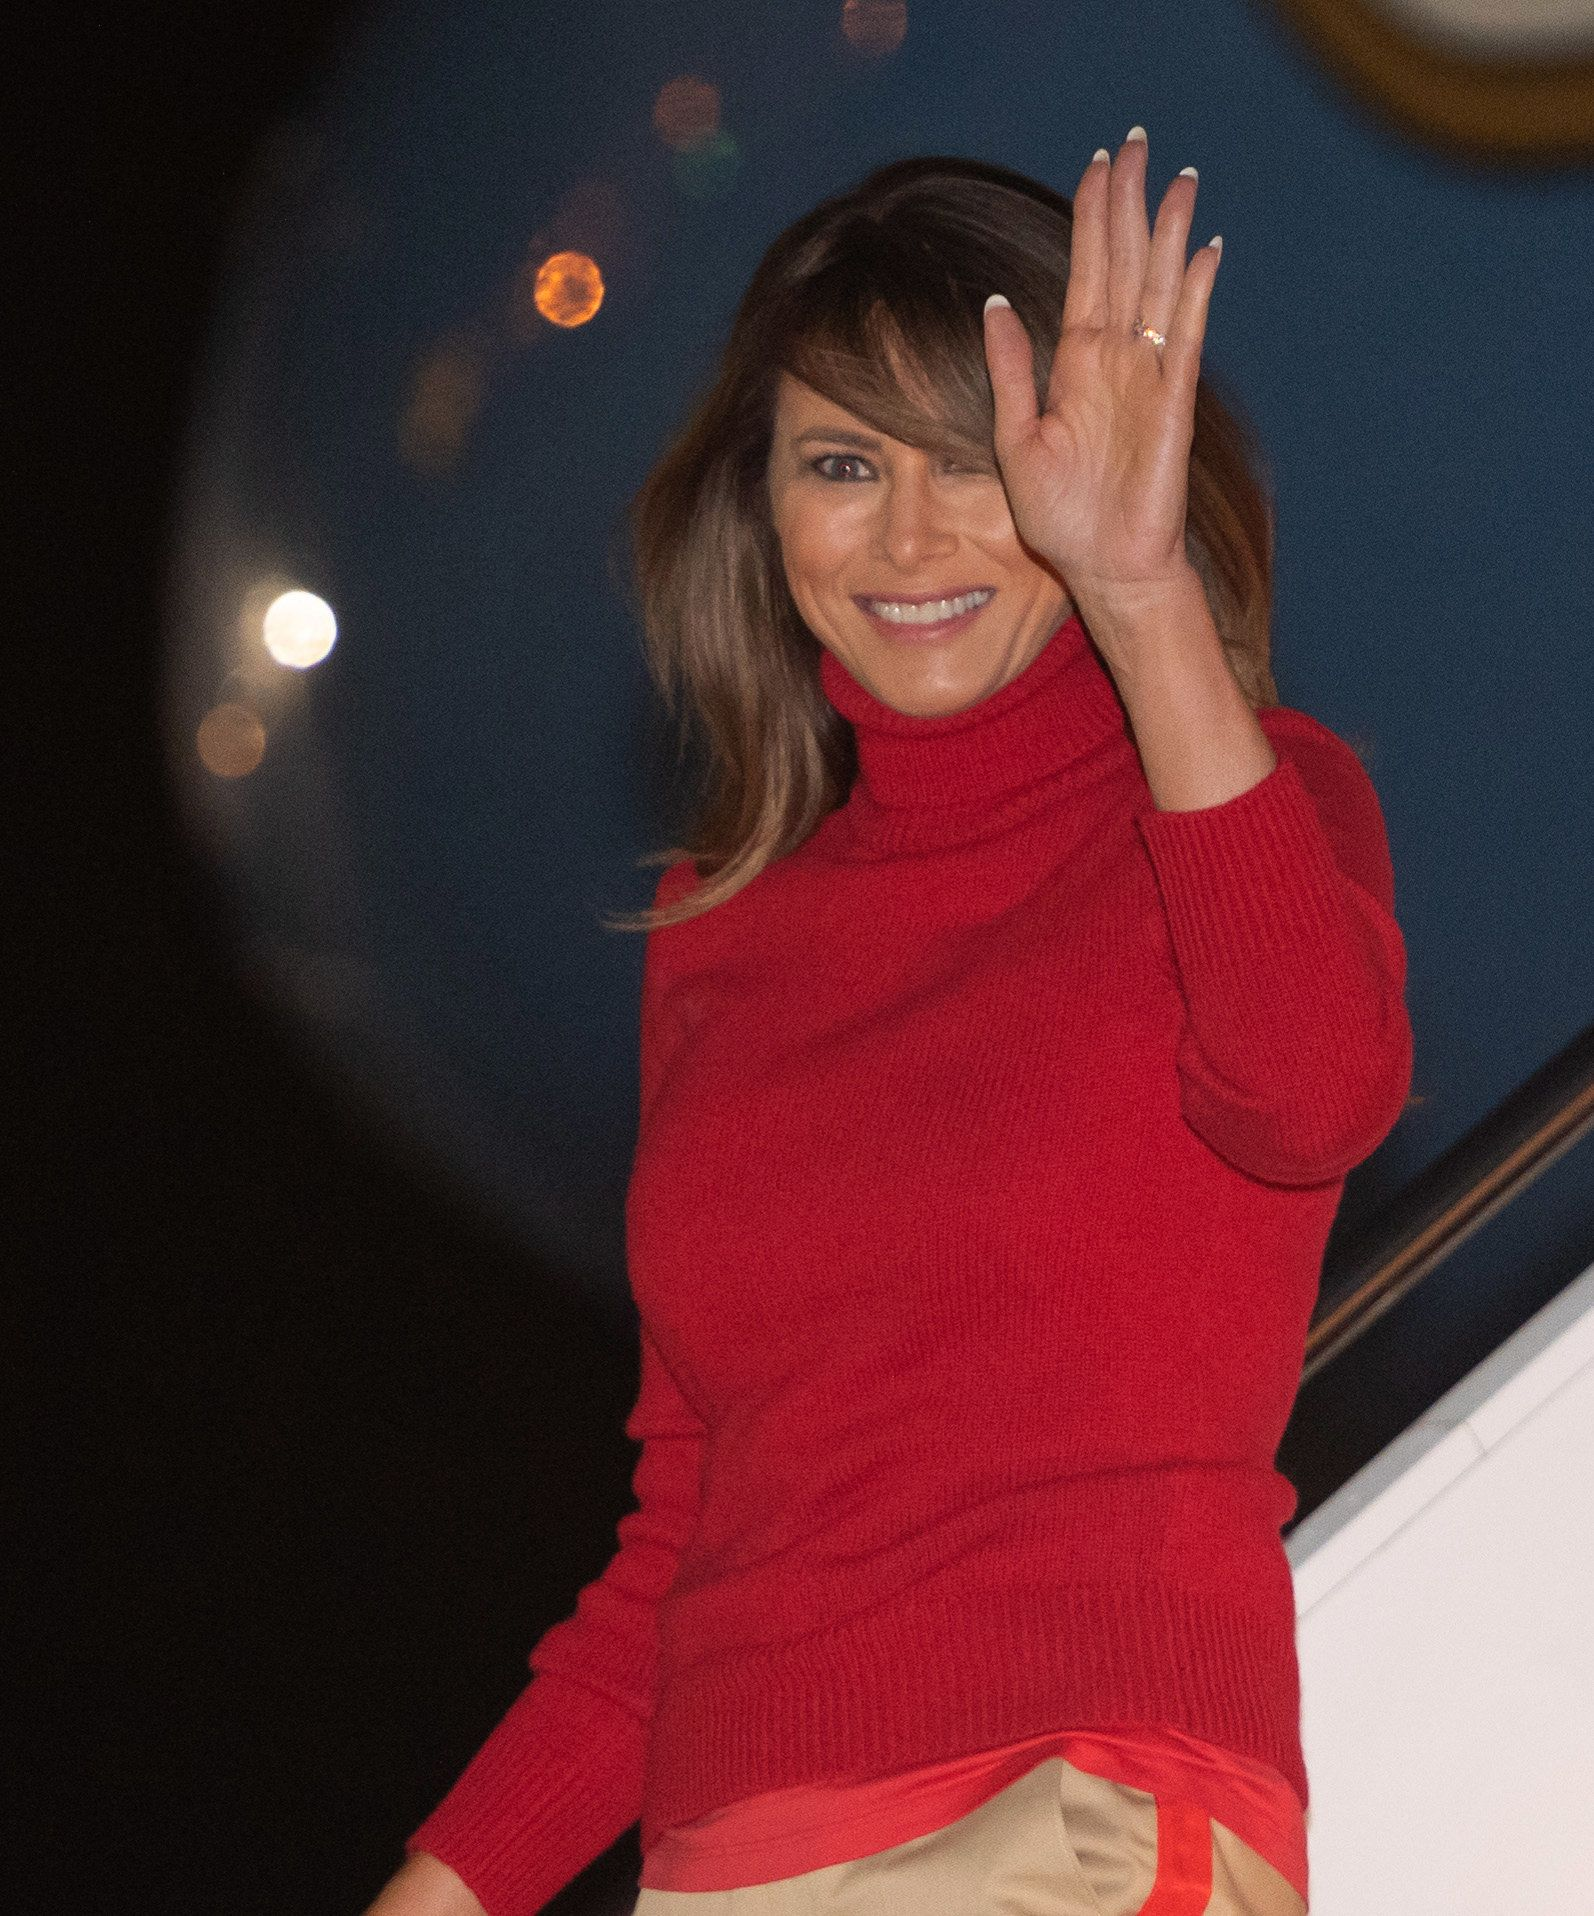 US First Lady Melania Trump waves as she disembarks from a military aircraft upon arrival at Joint Base Andrews in Maryland, early on October 7, 2018, following a six-day, four-country tour of Africa. (Photo by SAUL LOEB / AFP)        (Photo credit should read SAUL LOEB/AFP/Getty Images)